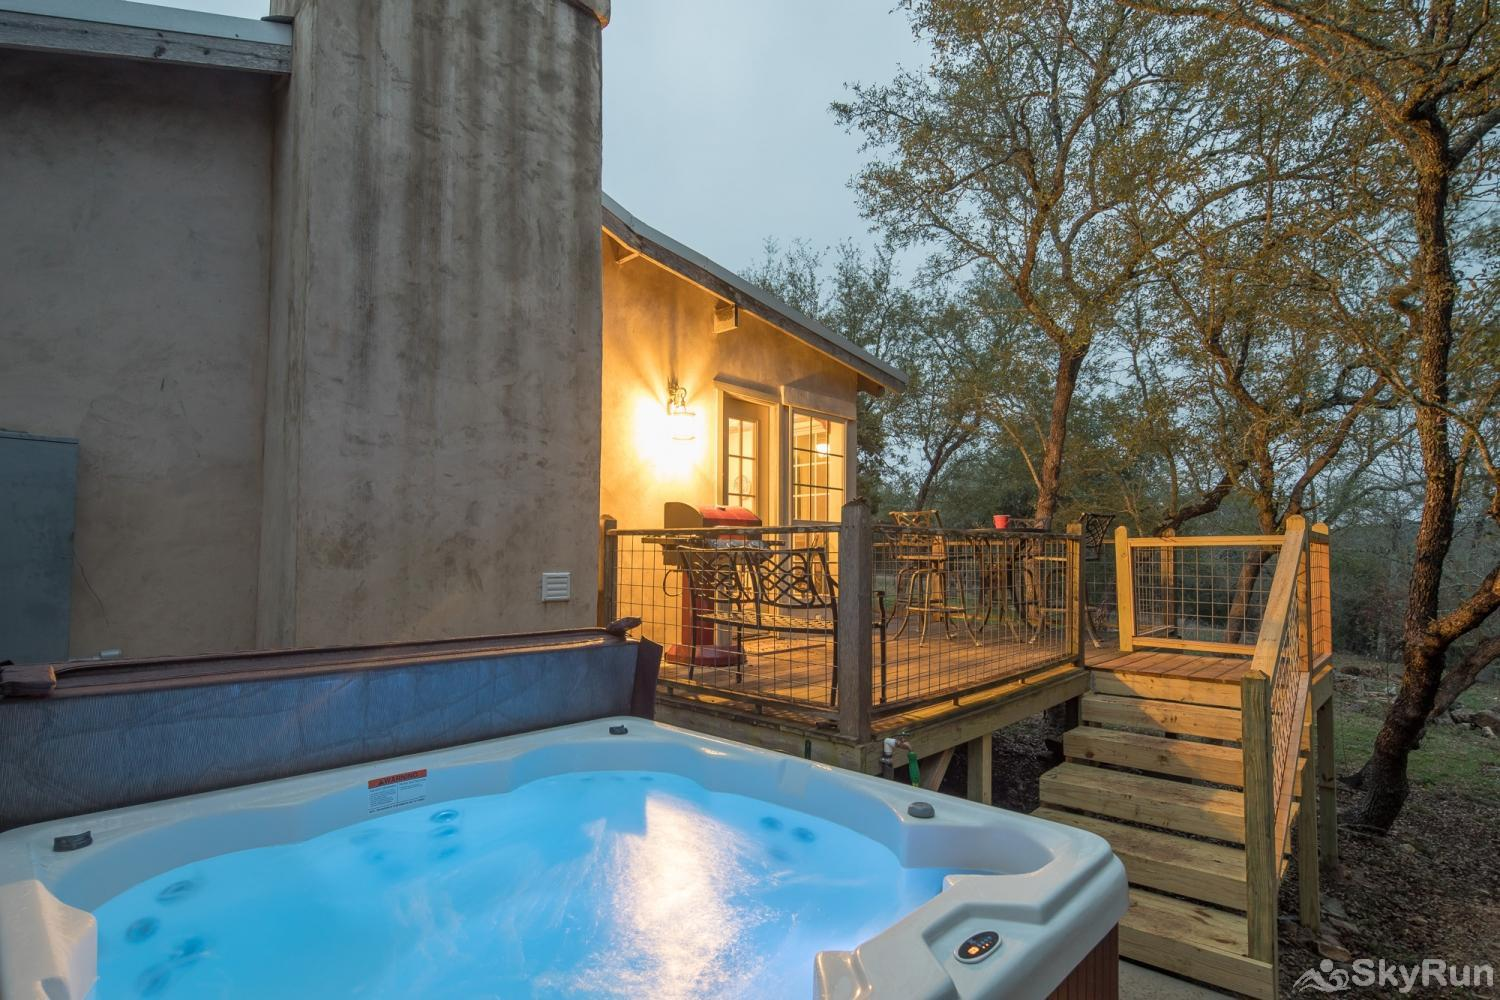 LITTLE ROCK 'N' WOOD Enjoy the Hot Tub under the Hill Country Stars